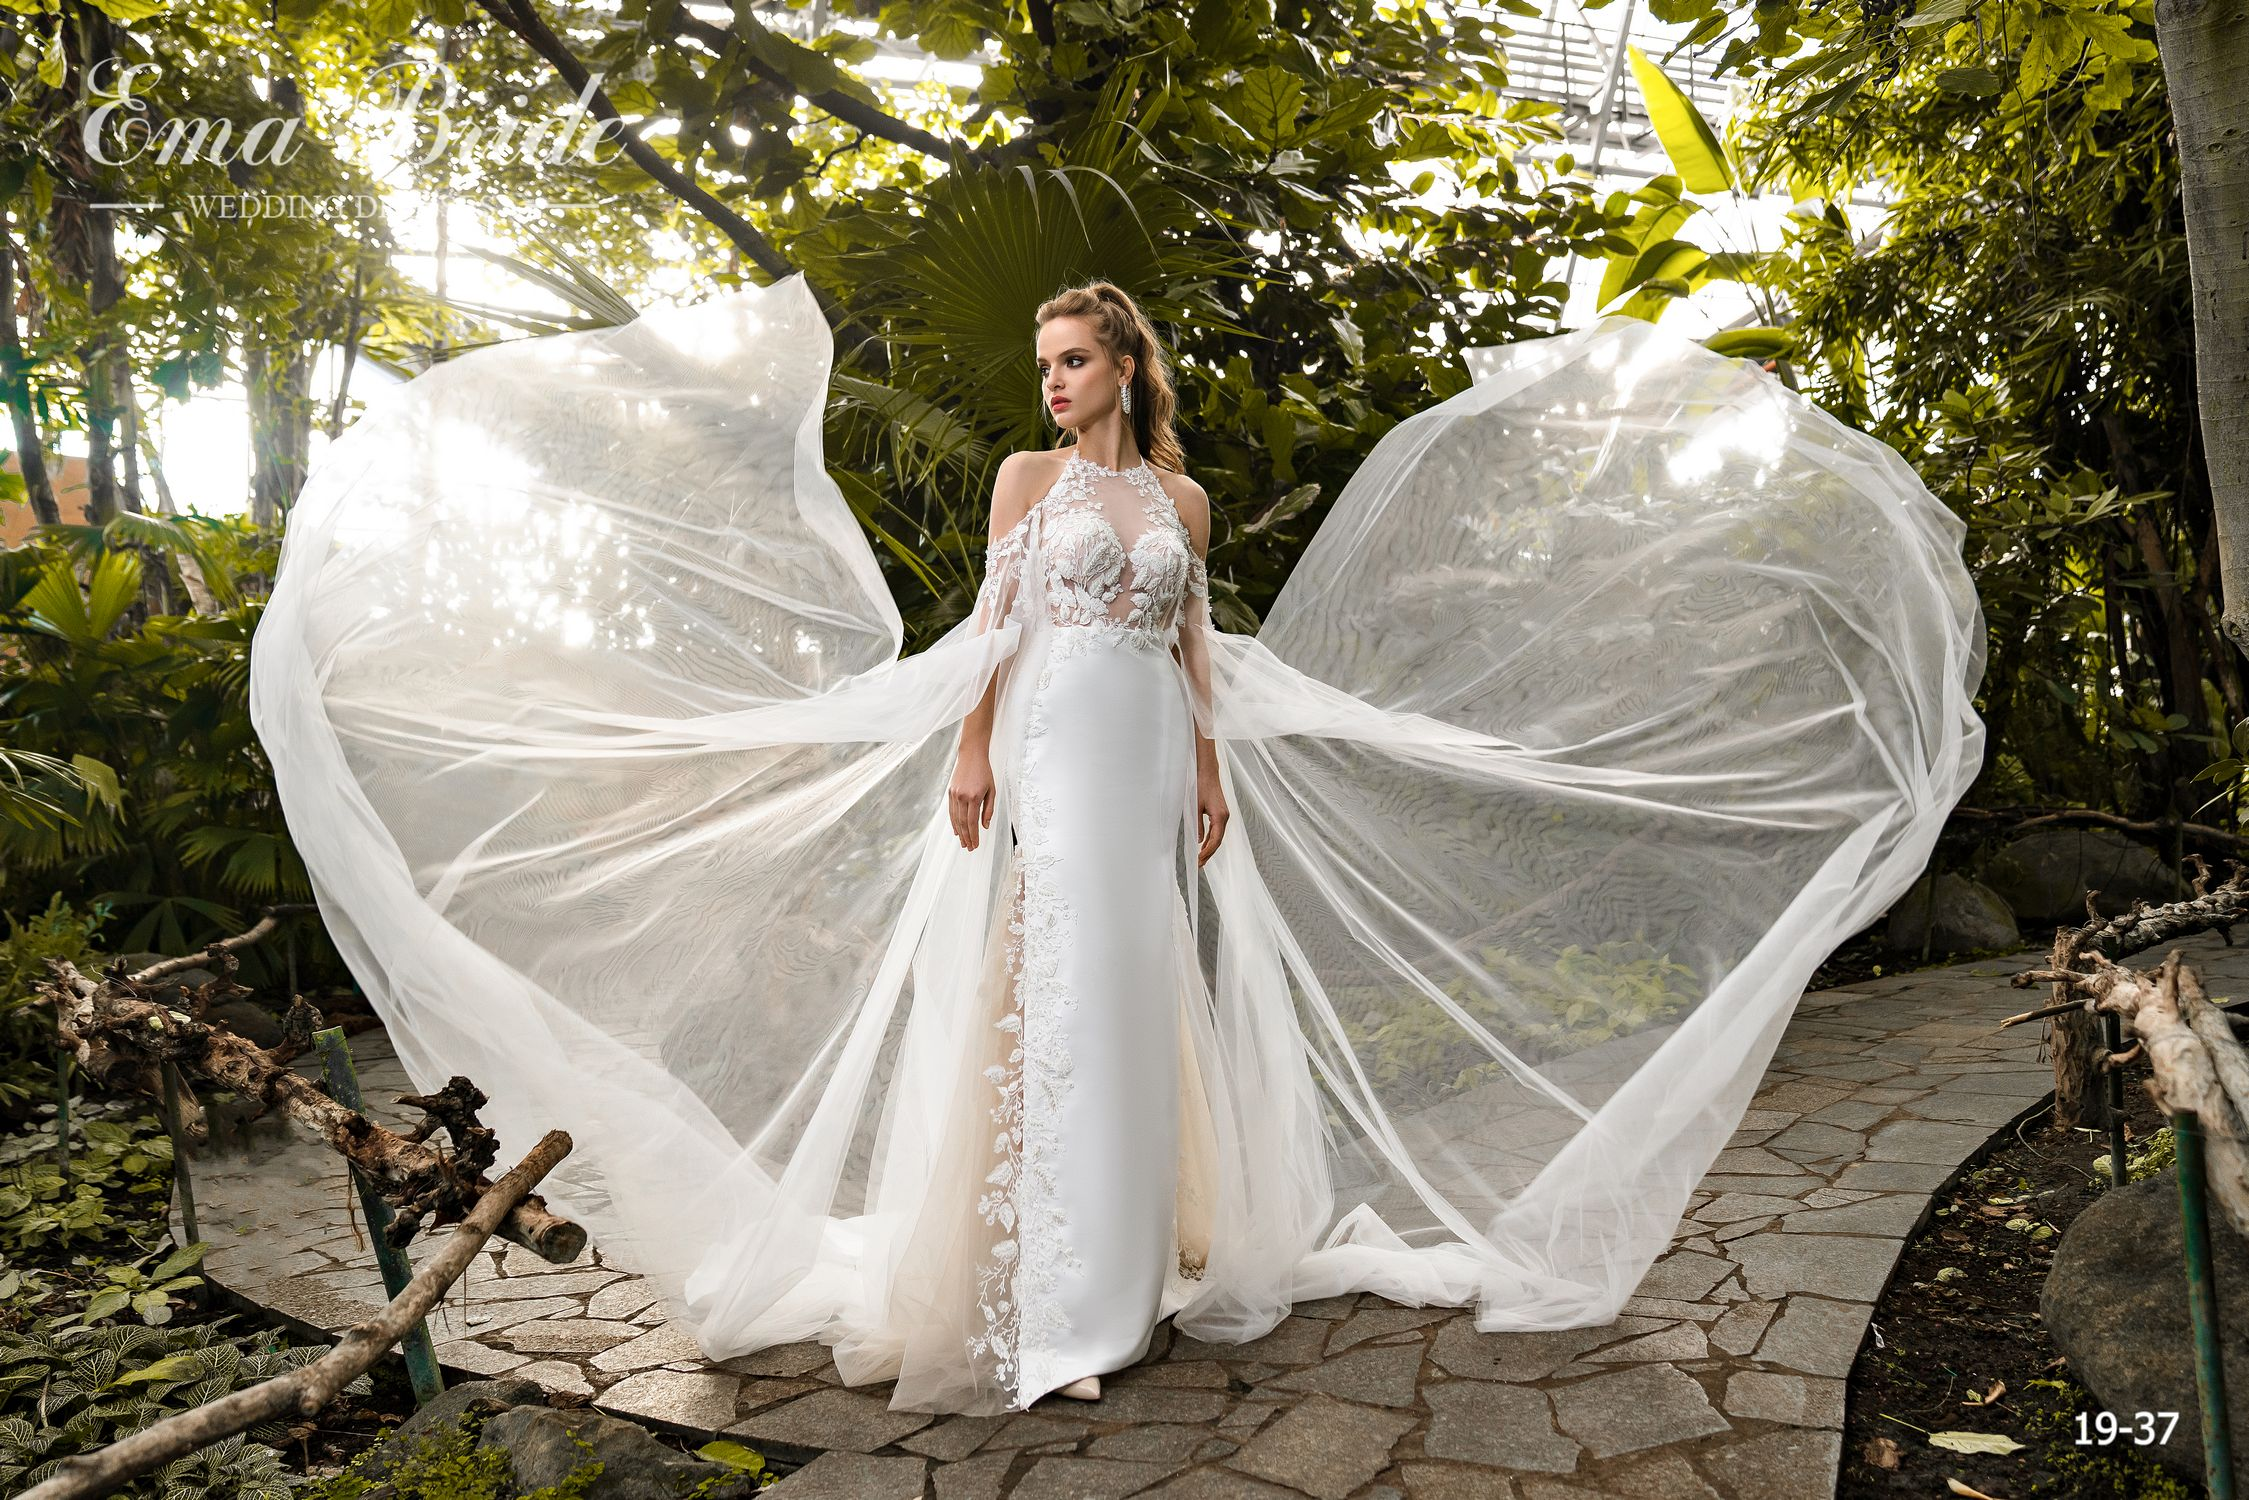 Model 19-37 | Buy wedding dresses wholesale by the ukrainian manufacturer Emabride-4